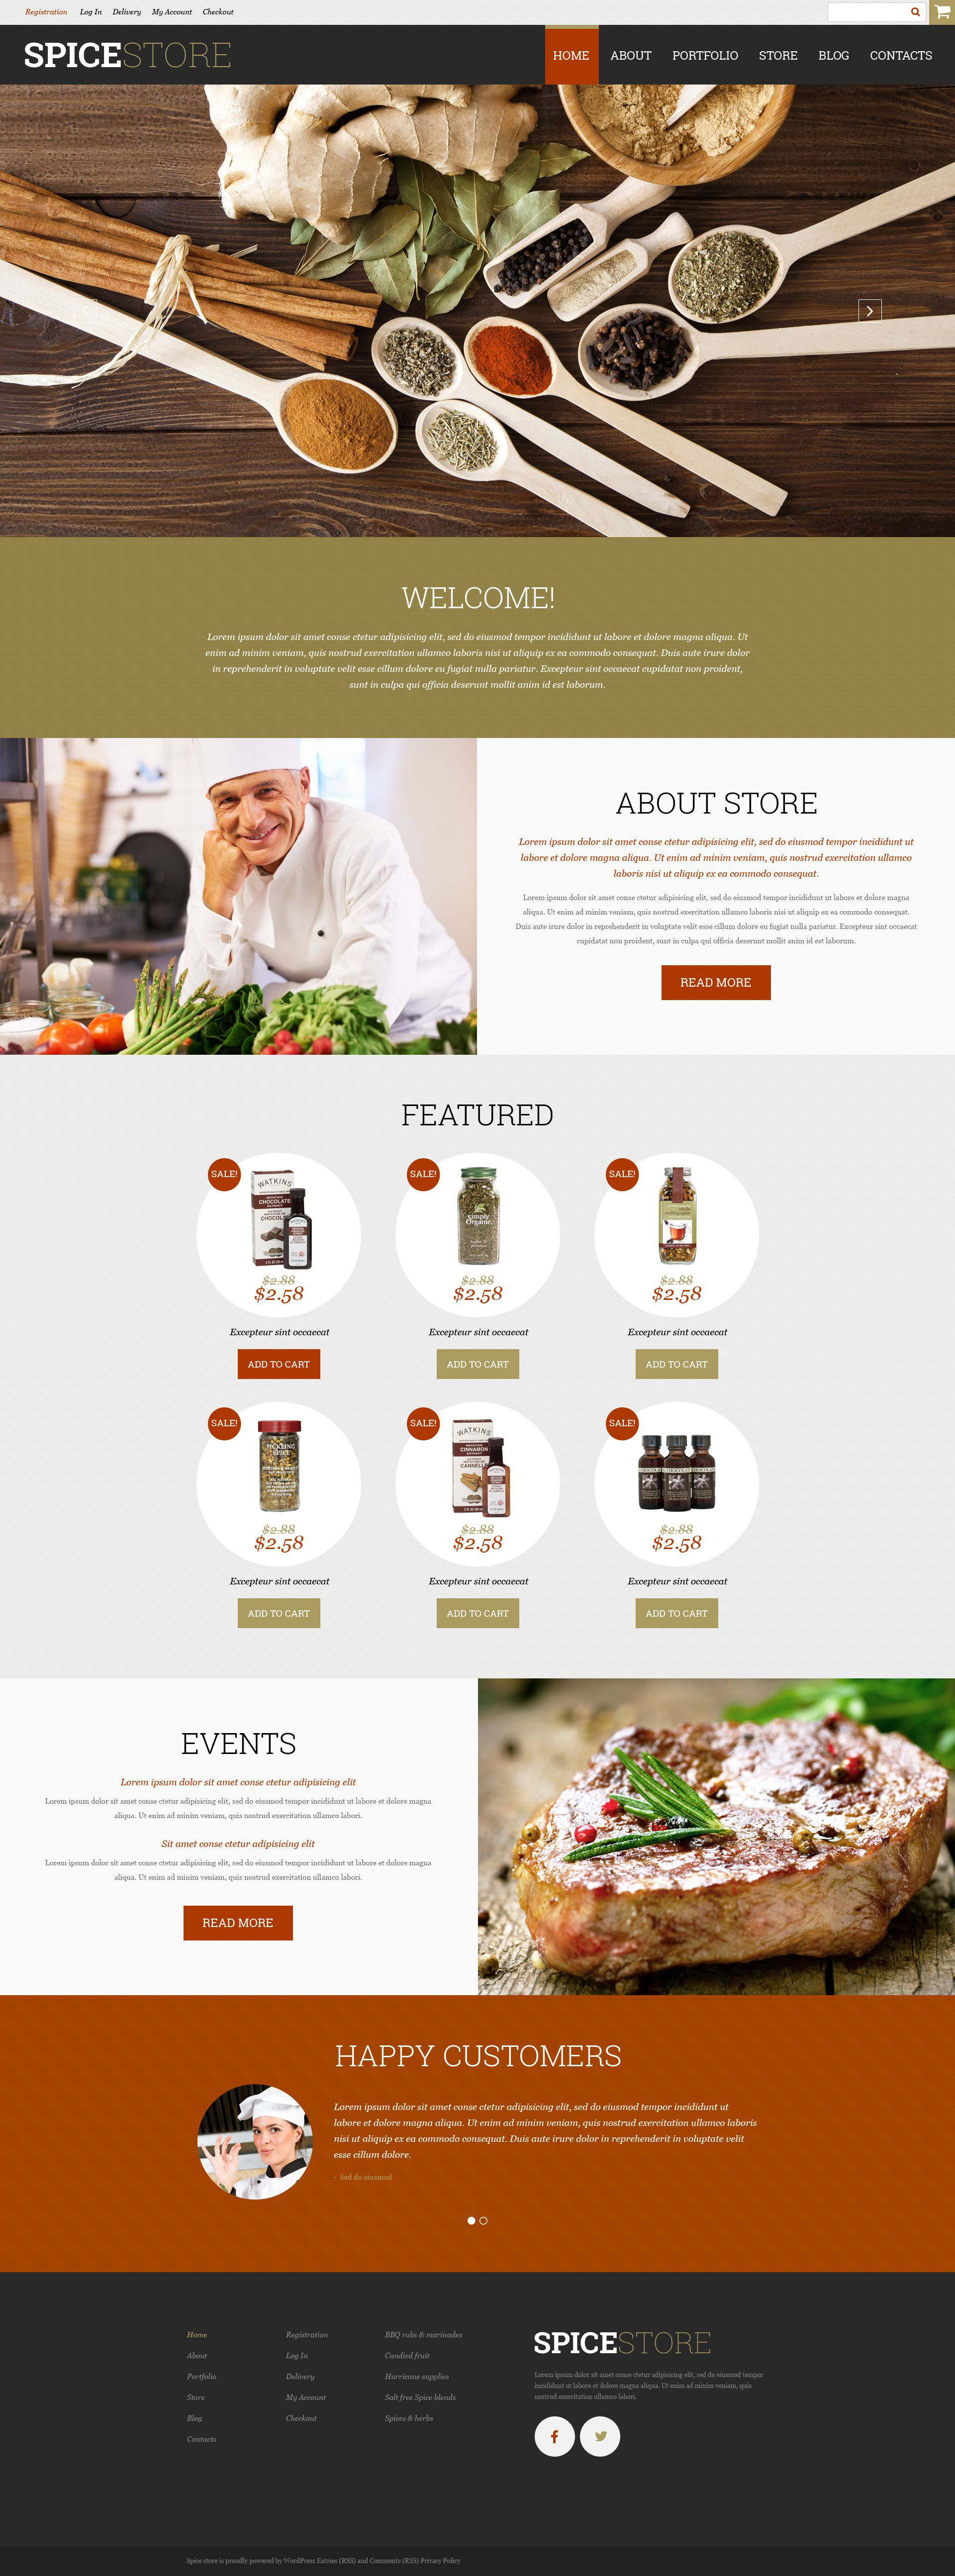 Responsivt Spice Shop WooCommerce-tema #52329